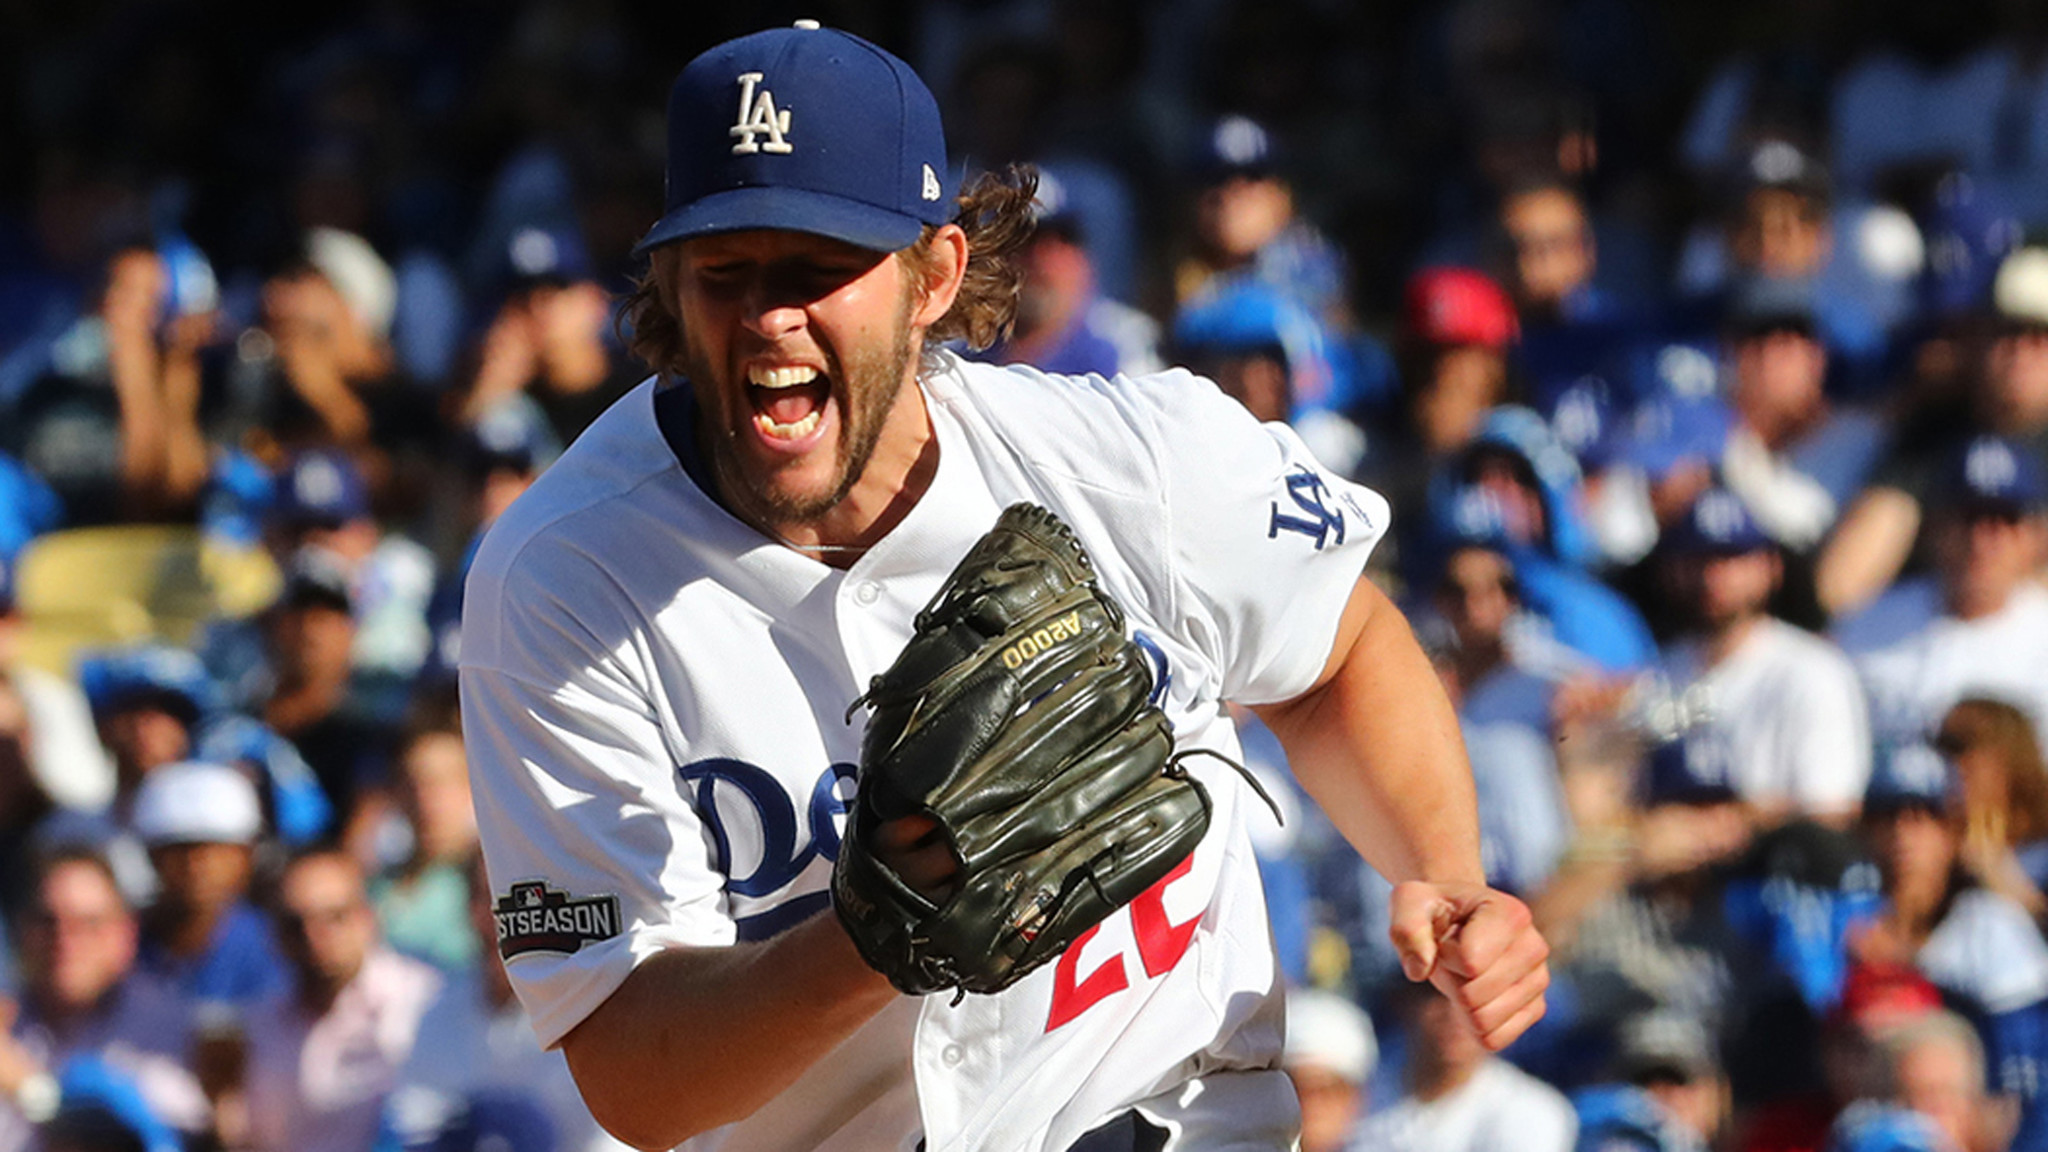 Dodgers' Clayton Kershaw is not available for Game 5 of NLDS (3.14/44)